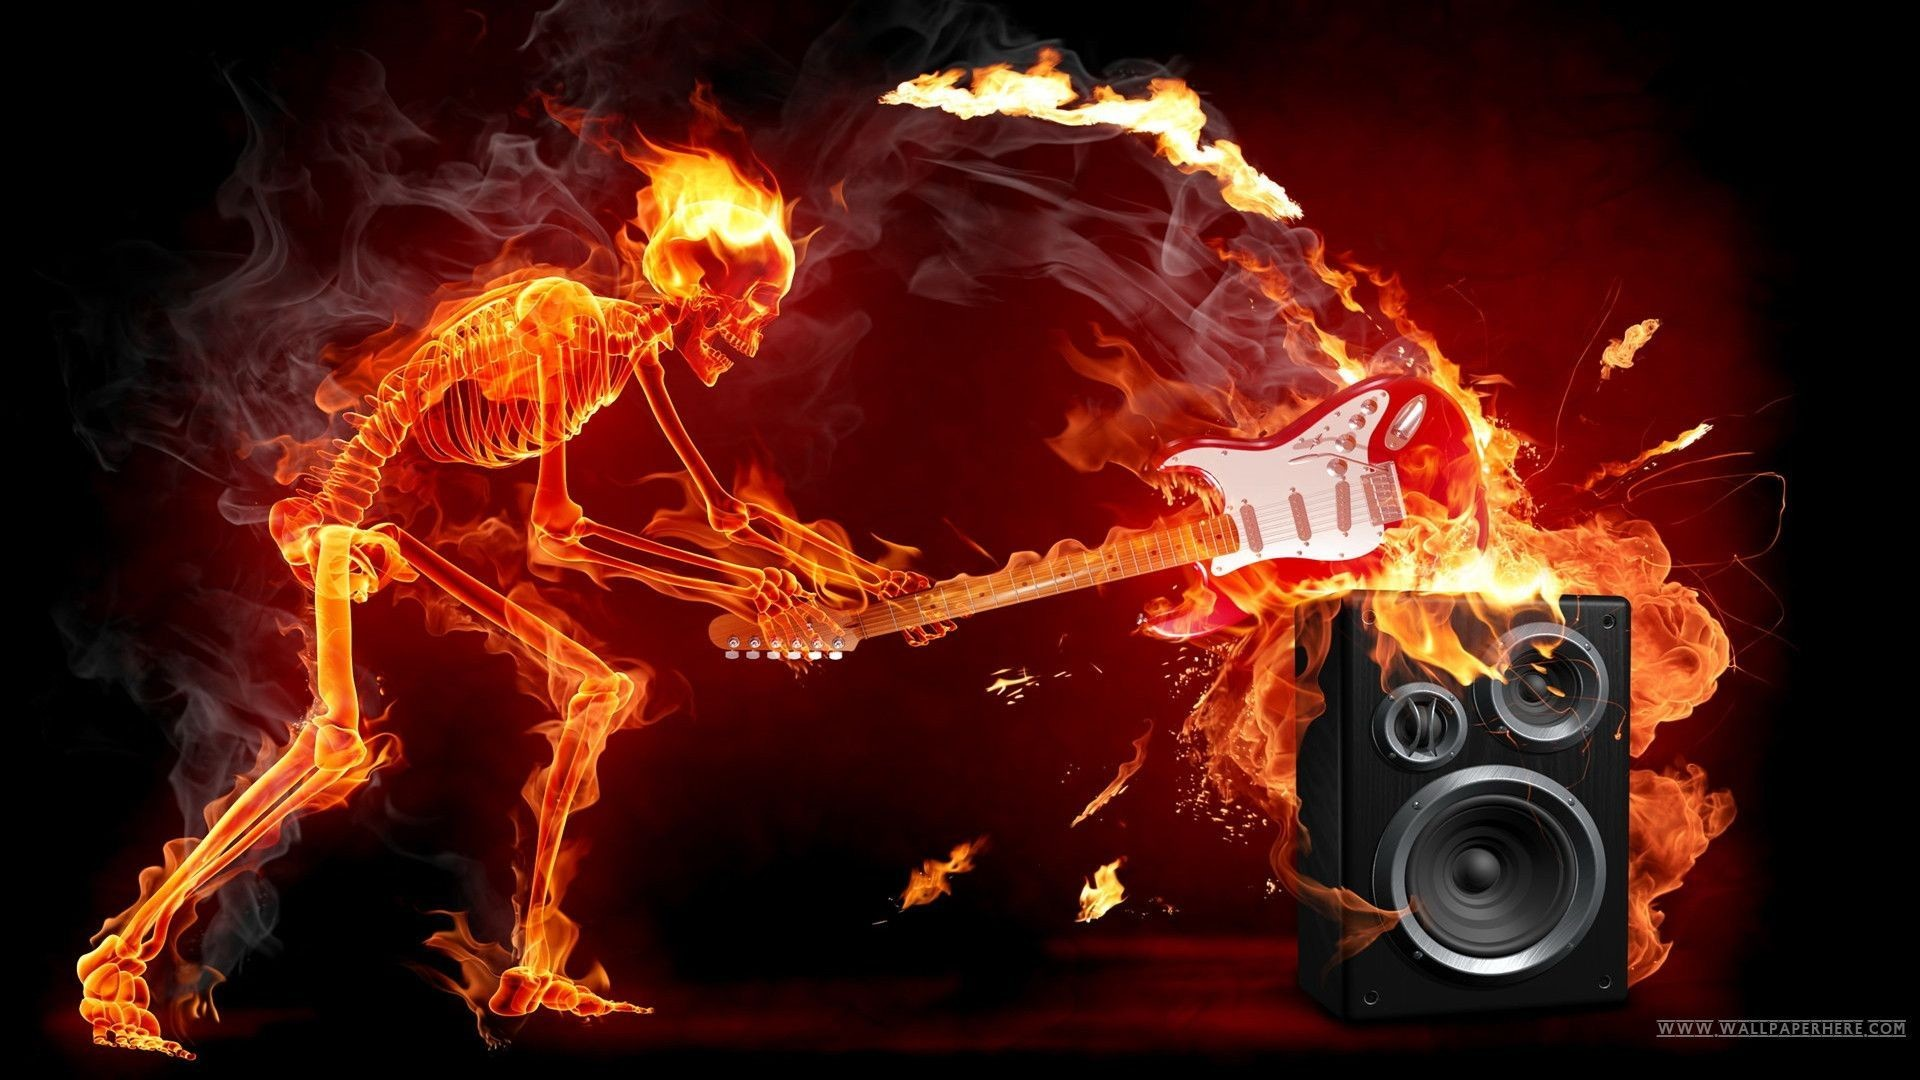 Playing Fire Wallpaper Free: Skull Fire Wallpaper (61+ Images